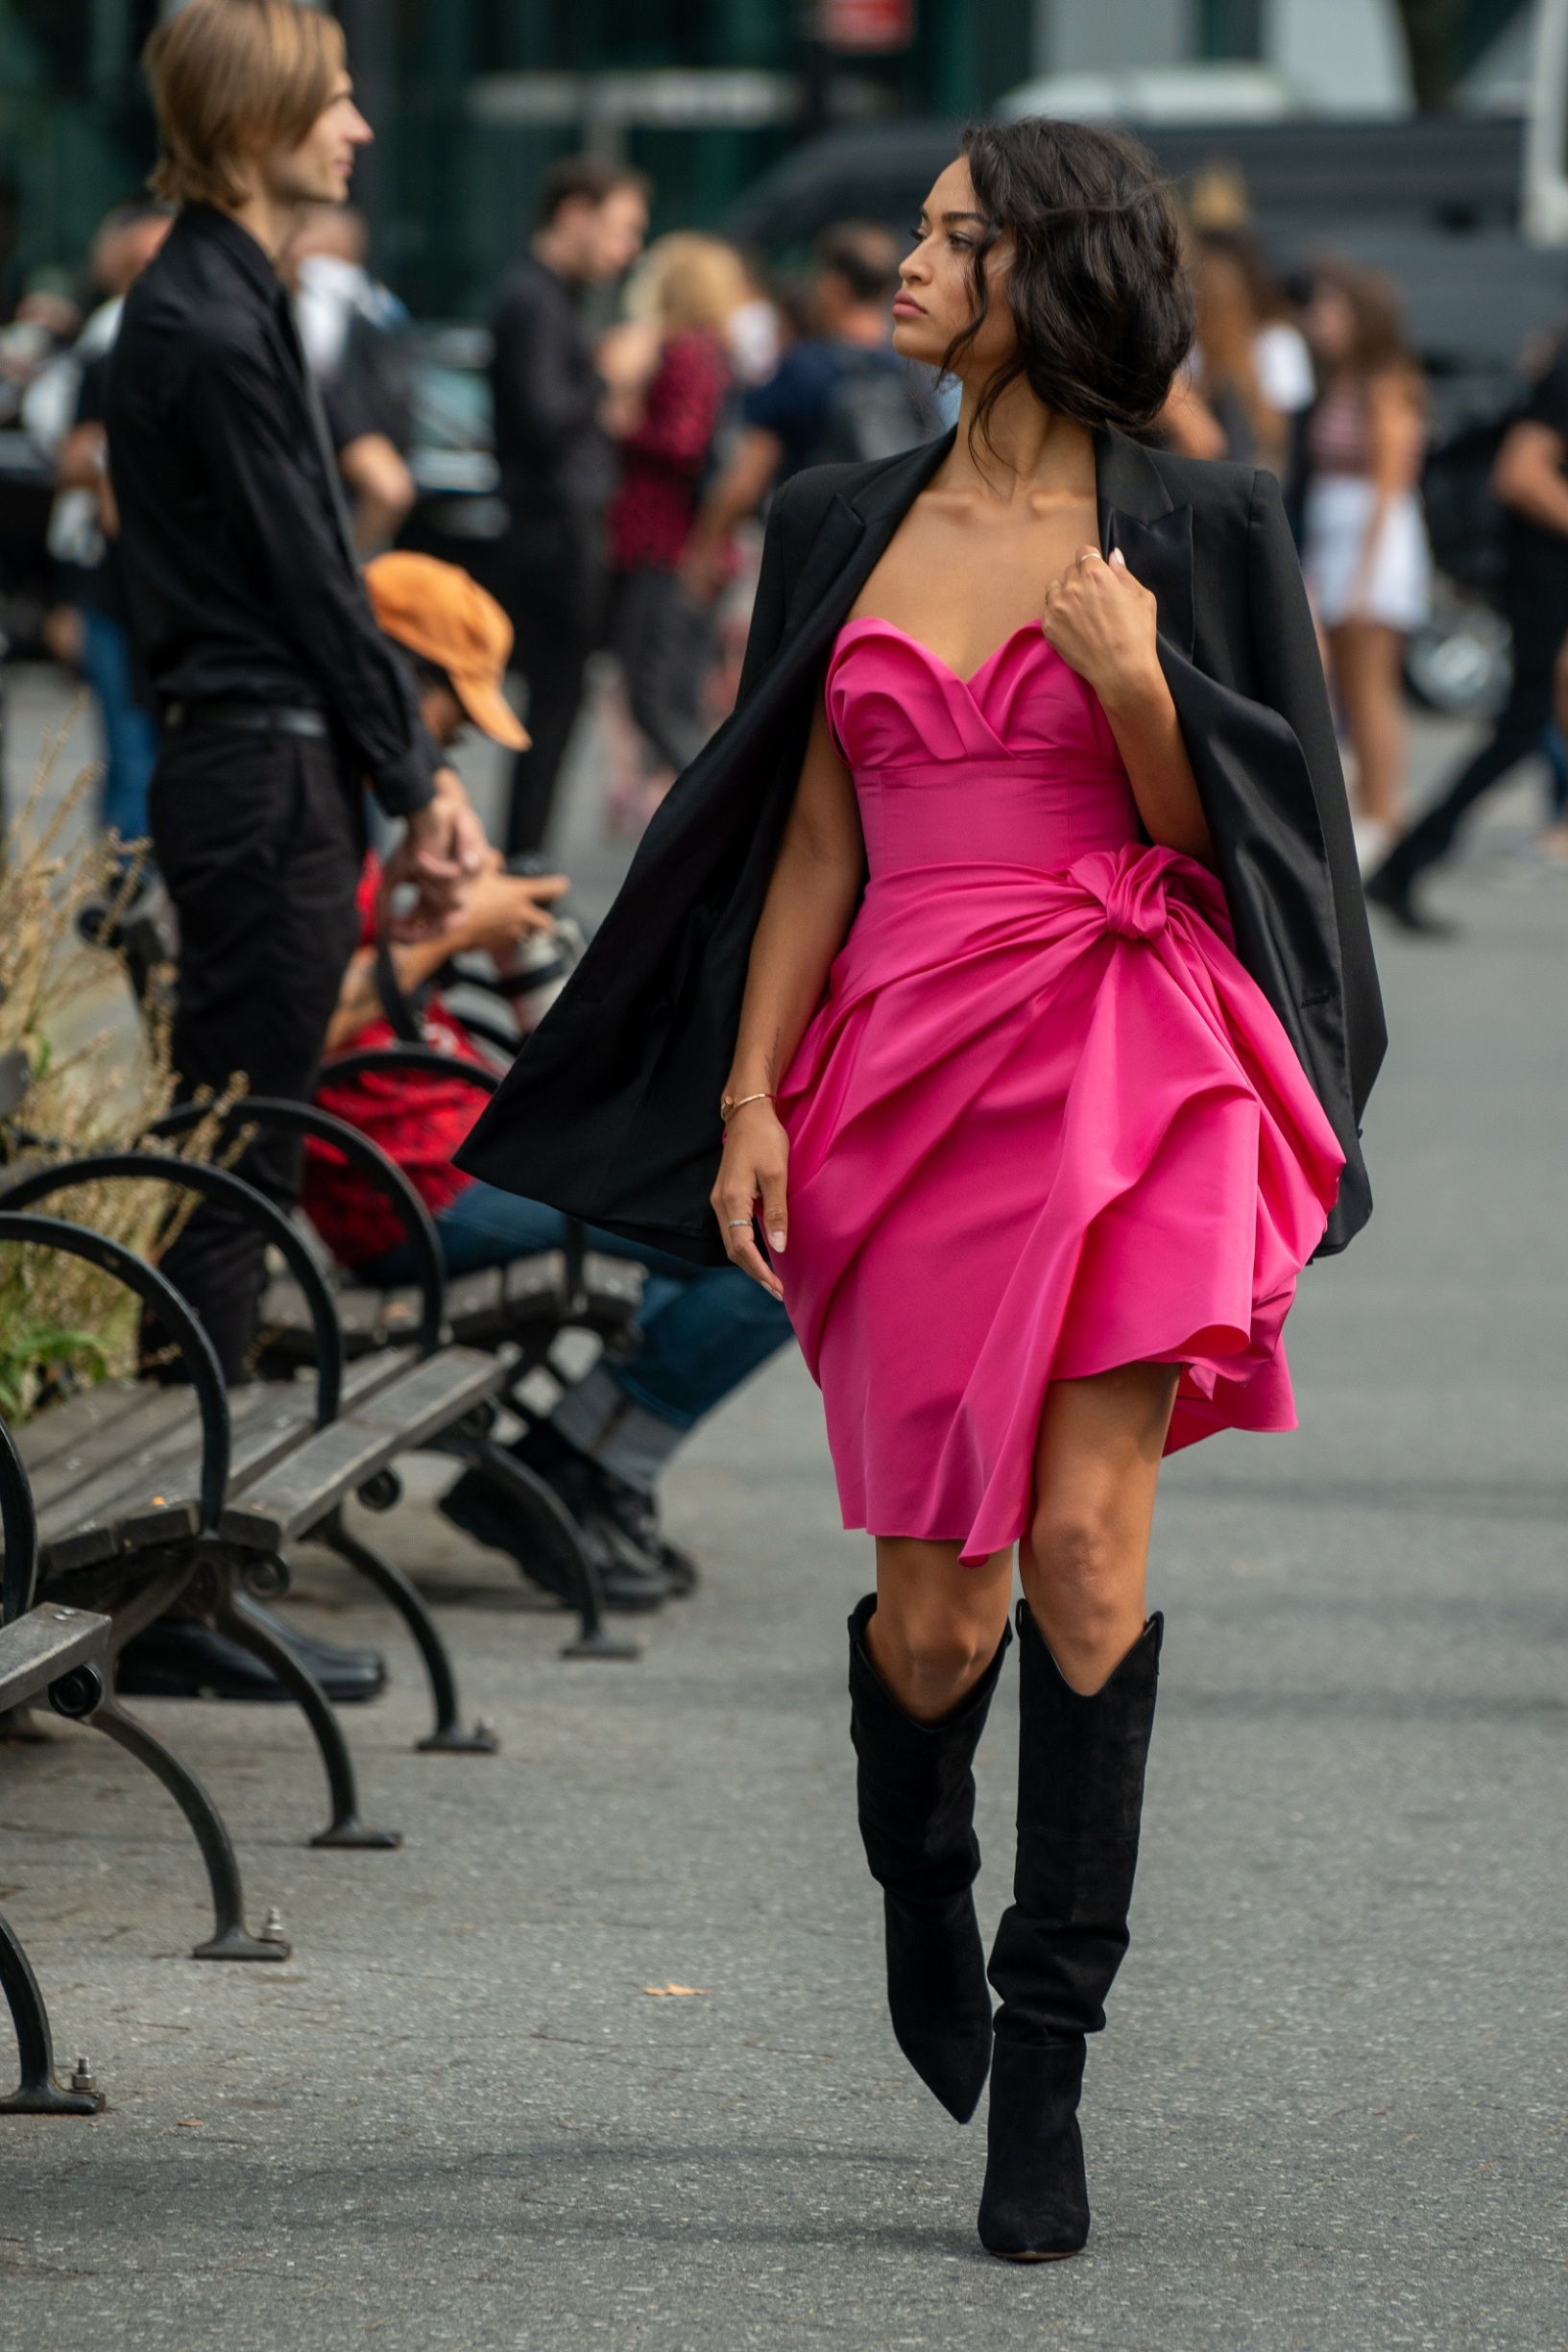 NEW YORK, NEW YORK - SEPTEMBER 09: Shanina Shaik is seen wearing a Carolina Herrera dress outside the Carolina Herrera show during New York Fashion Week S/S20 on September 09, 2019 in New York City. (Photo by David Dee Delgado/Getty Images)